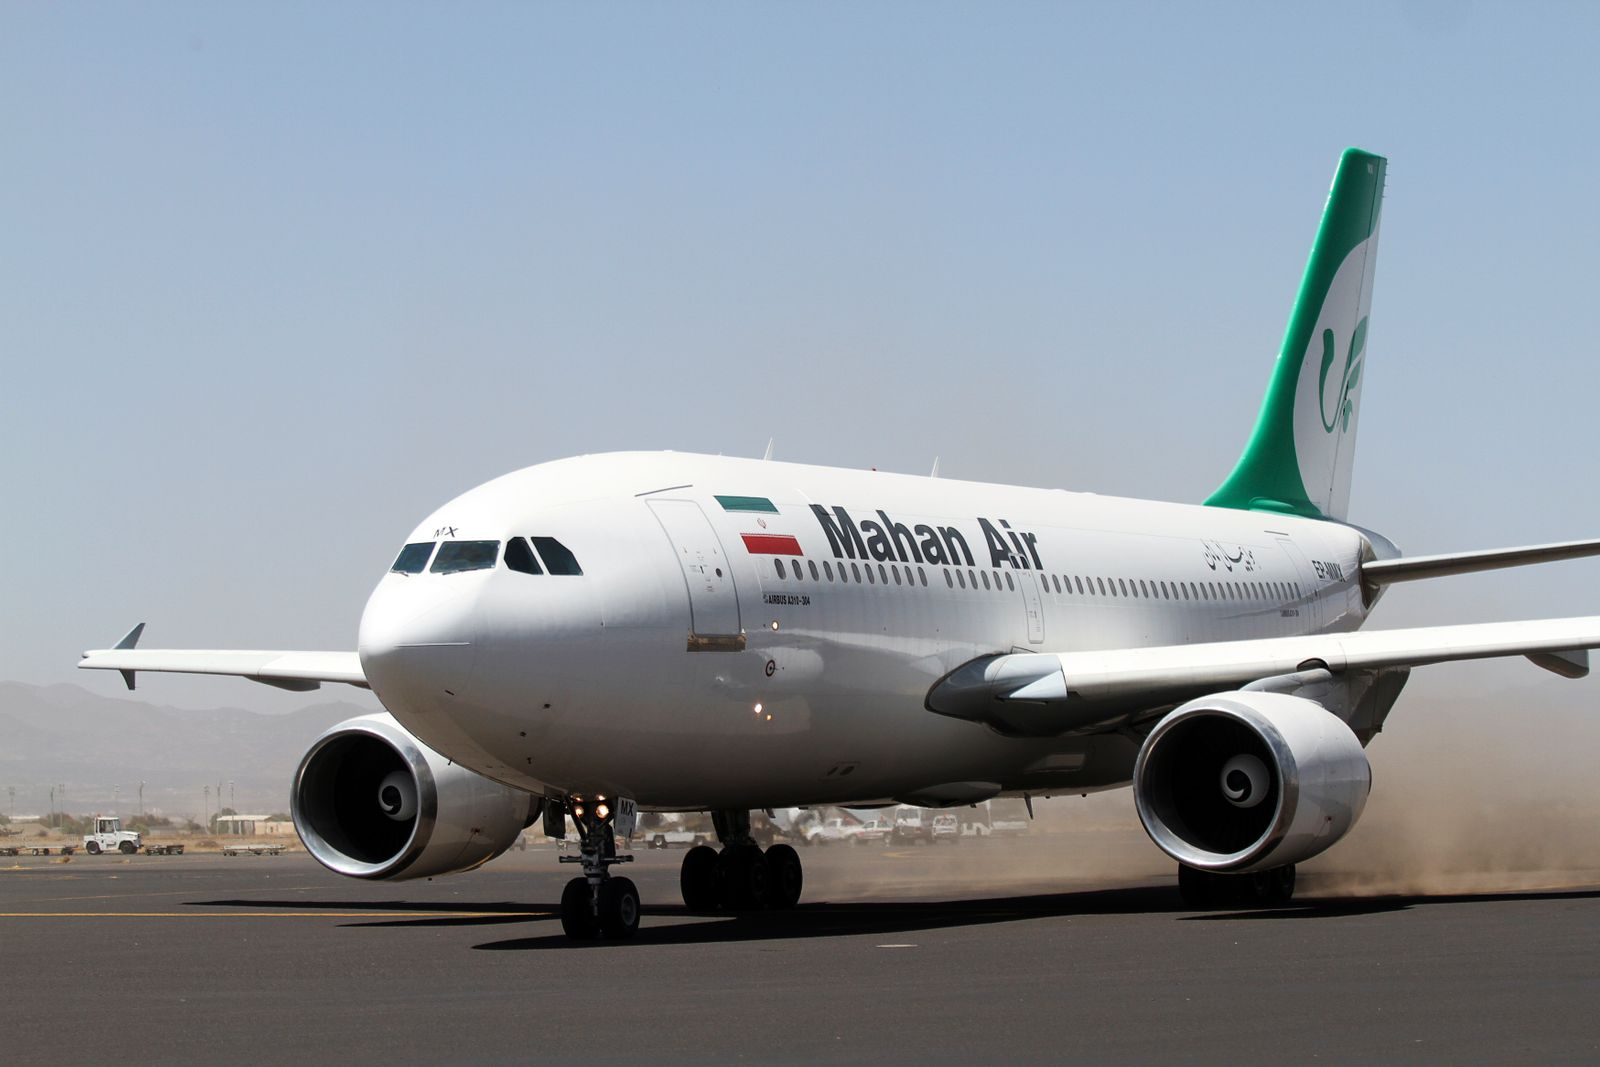 An Airbus A310 of Iranian private airline Mahan Air taxis at Sanaa International airport following its first flight to Yemen from Iran, in Sanaa